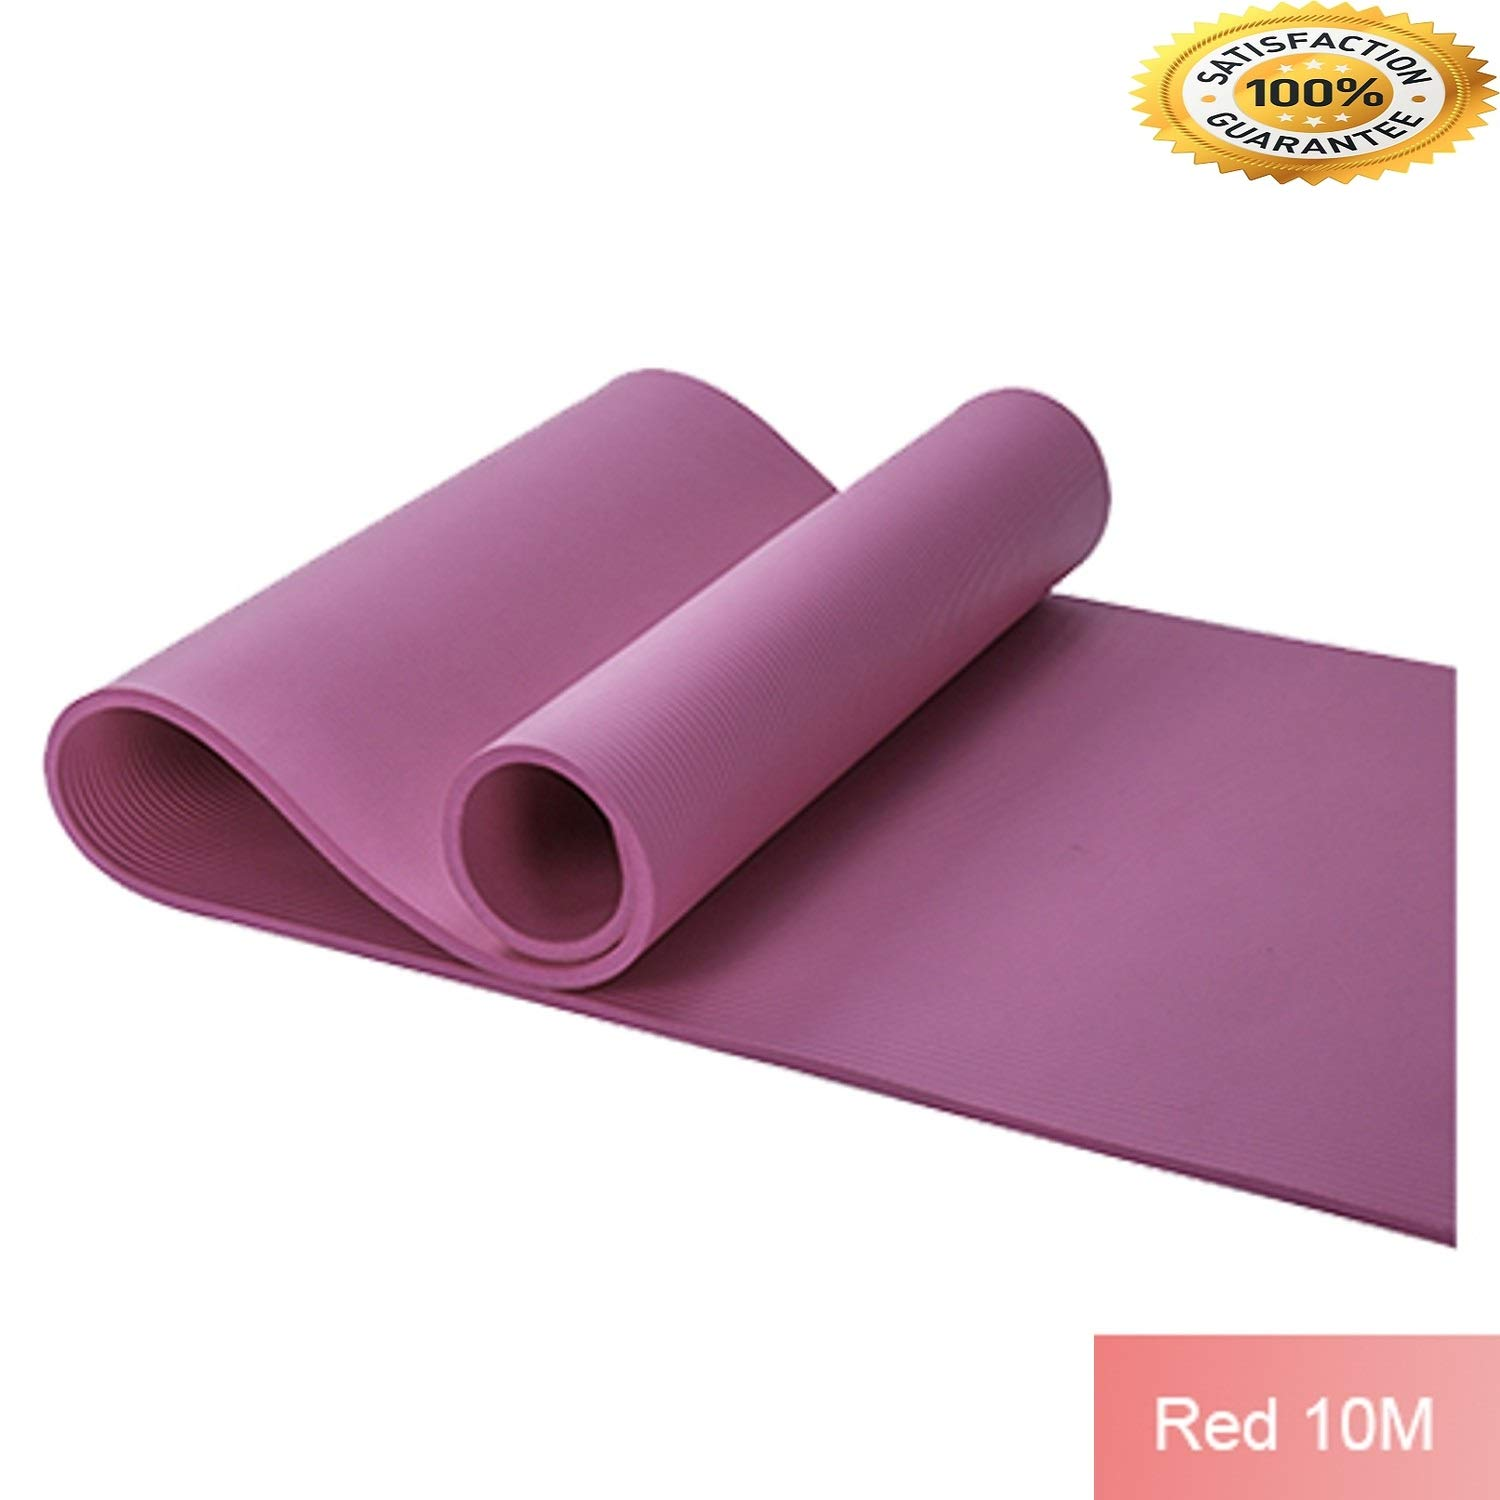 Amazon.com : FIRE ANT Professional Slip-Proof NBR Yoga mat ...